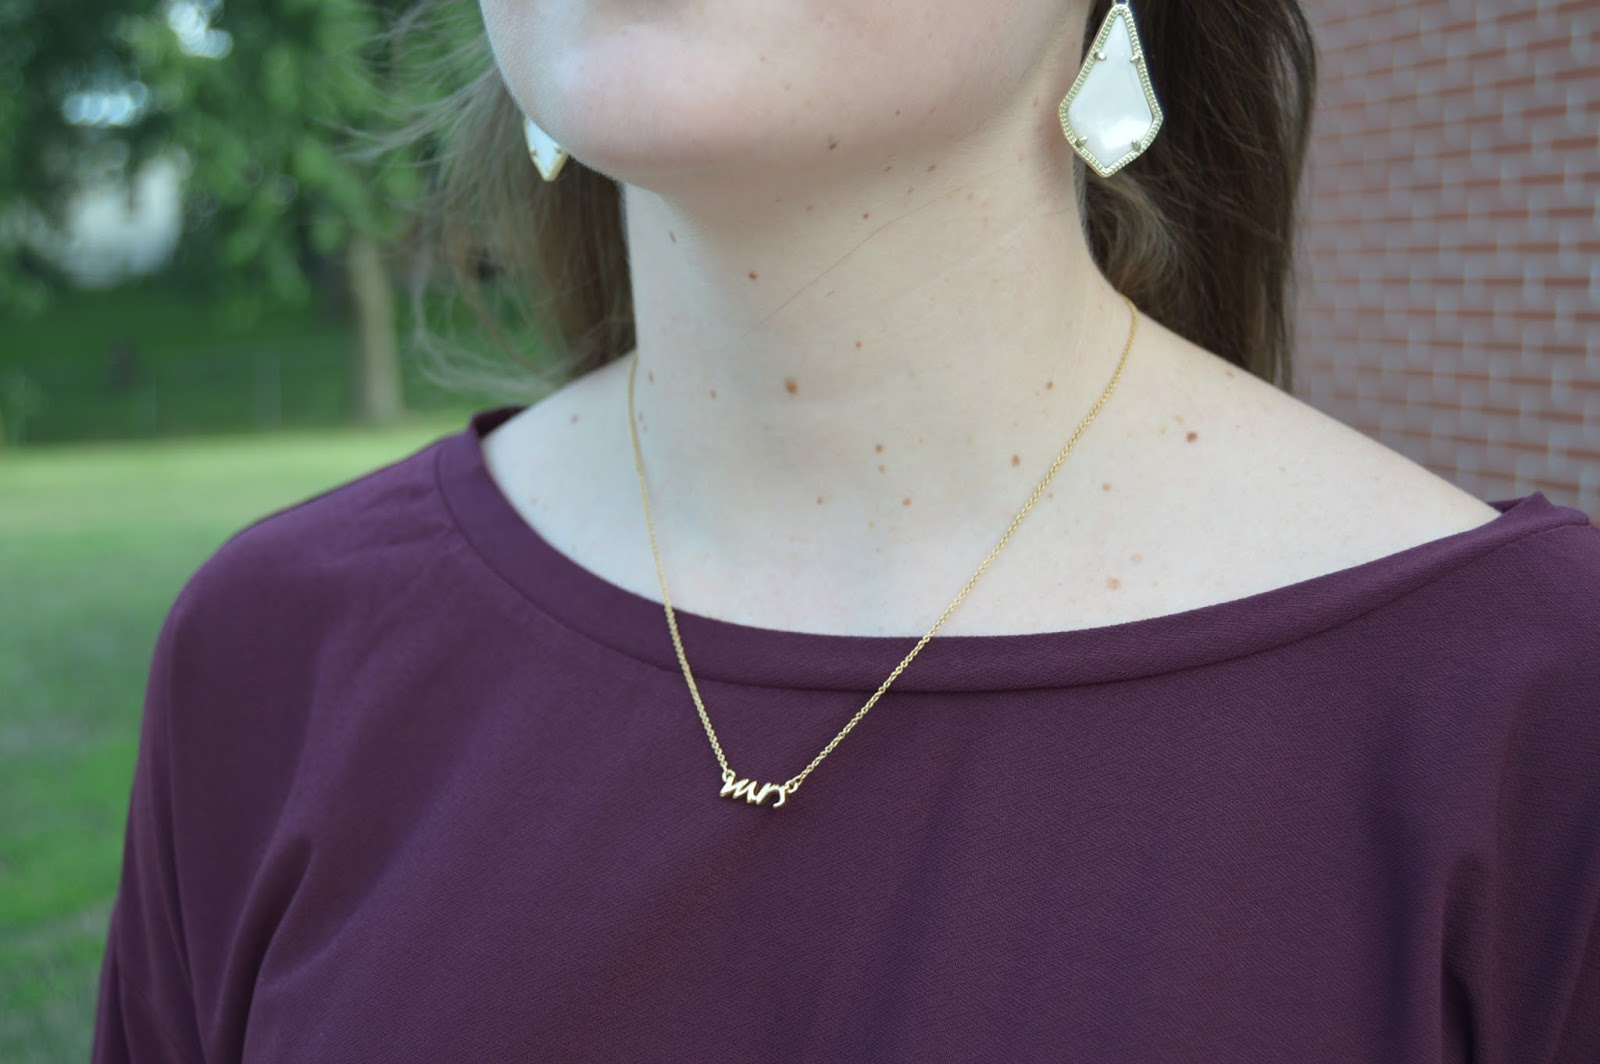 kate spade mrs necklace | alex earrings from kendra scott | cute accessories to wear for date night | a memory of us |